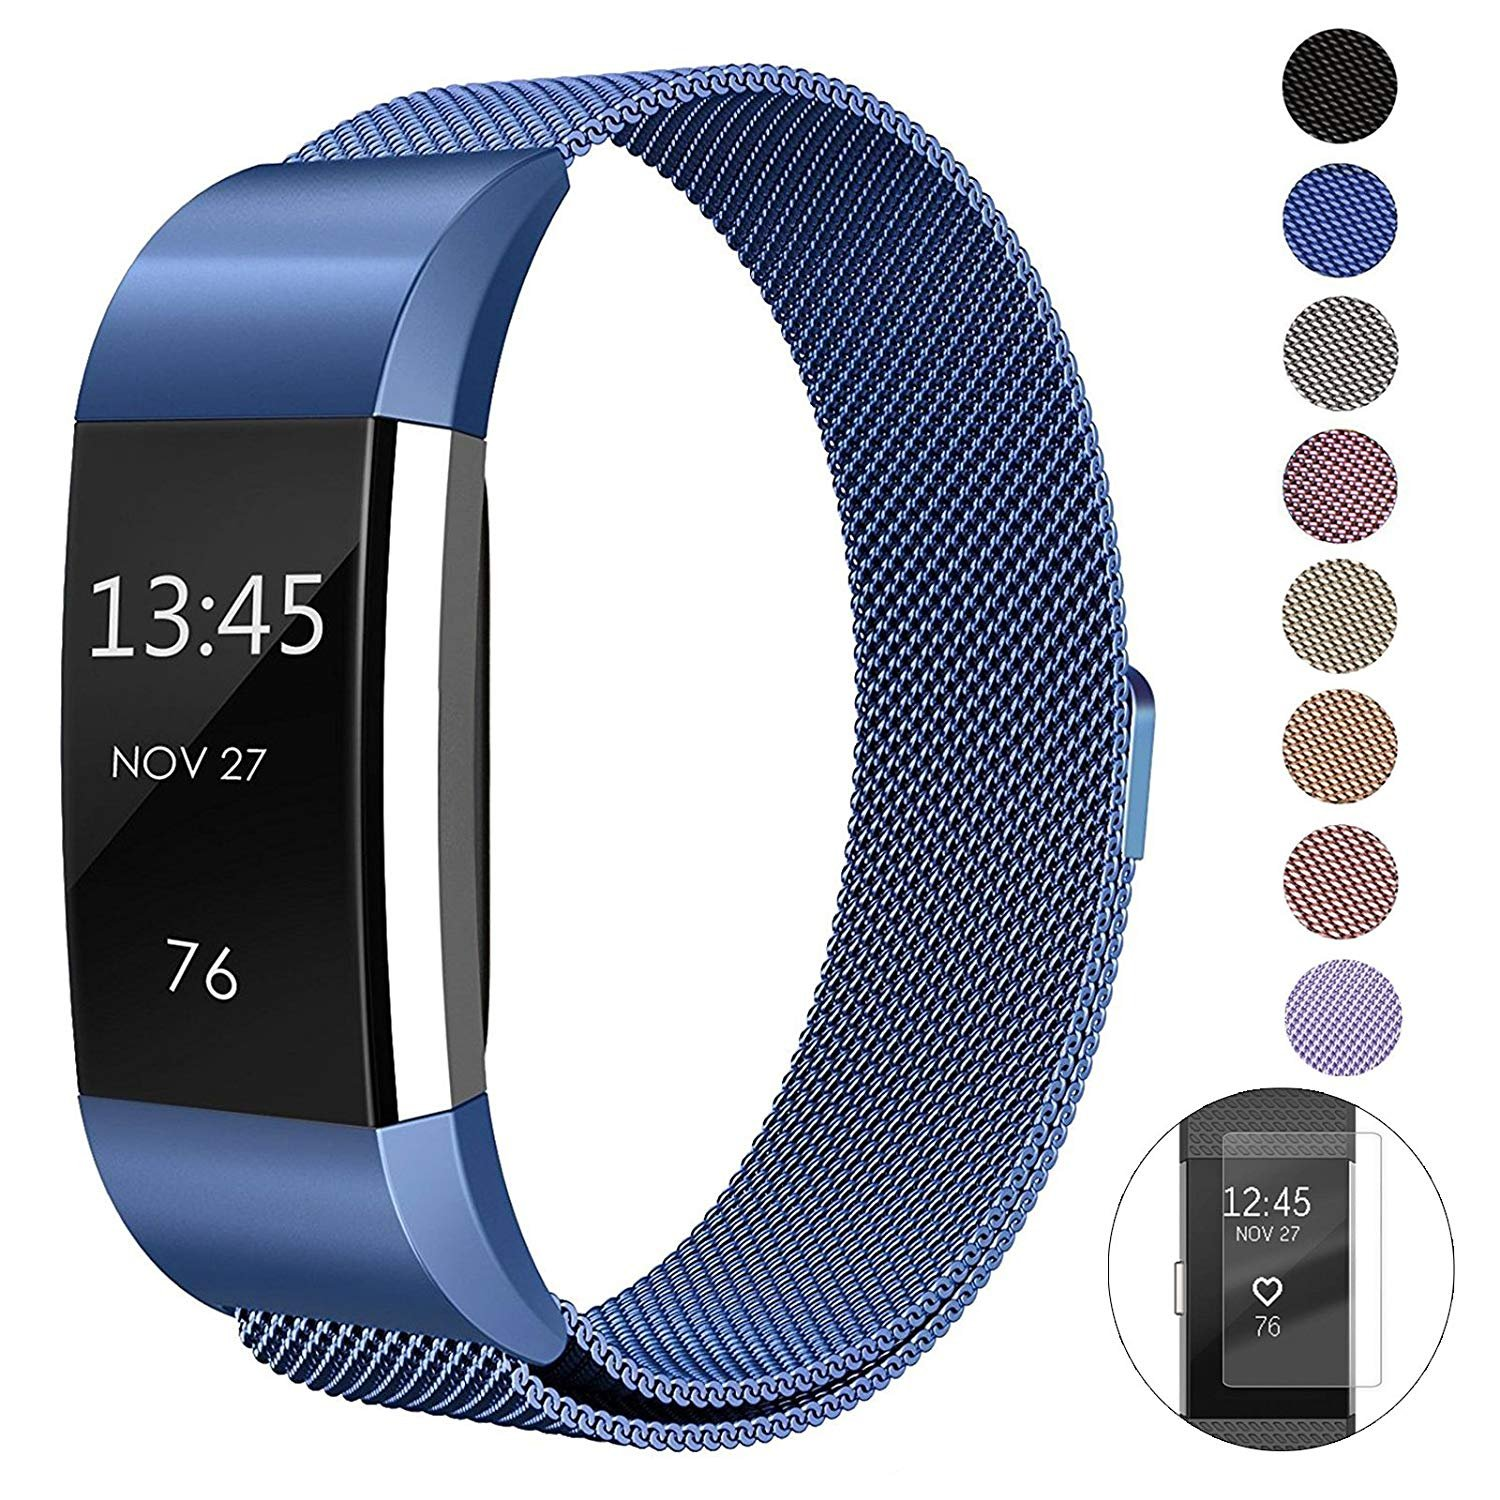 Fun Sponsor Fitbit Charge 2 Armband, Milanese Fitbit Charge 2 Ersatzarmband Edelstahl Fitbit Armbänder Charge 2 mit Magnet-Verschluss Armband für Fitbit Charge + Bonus Displayschutzfolie